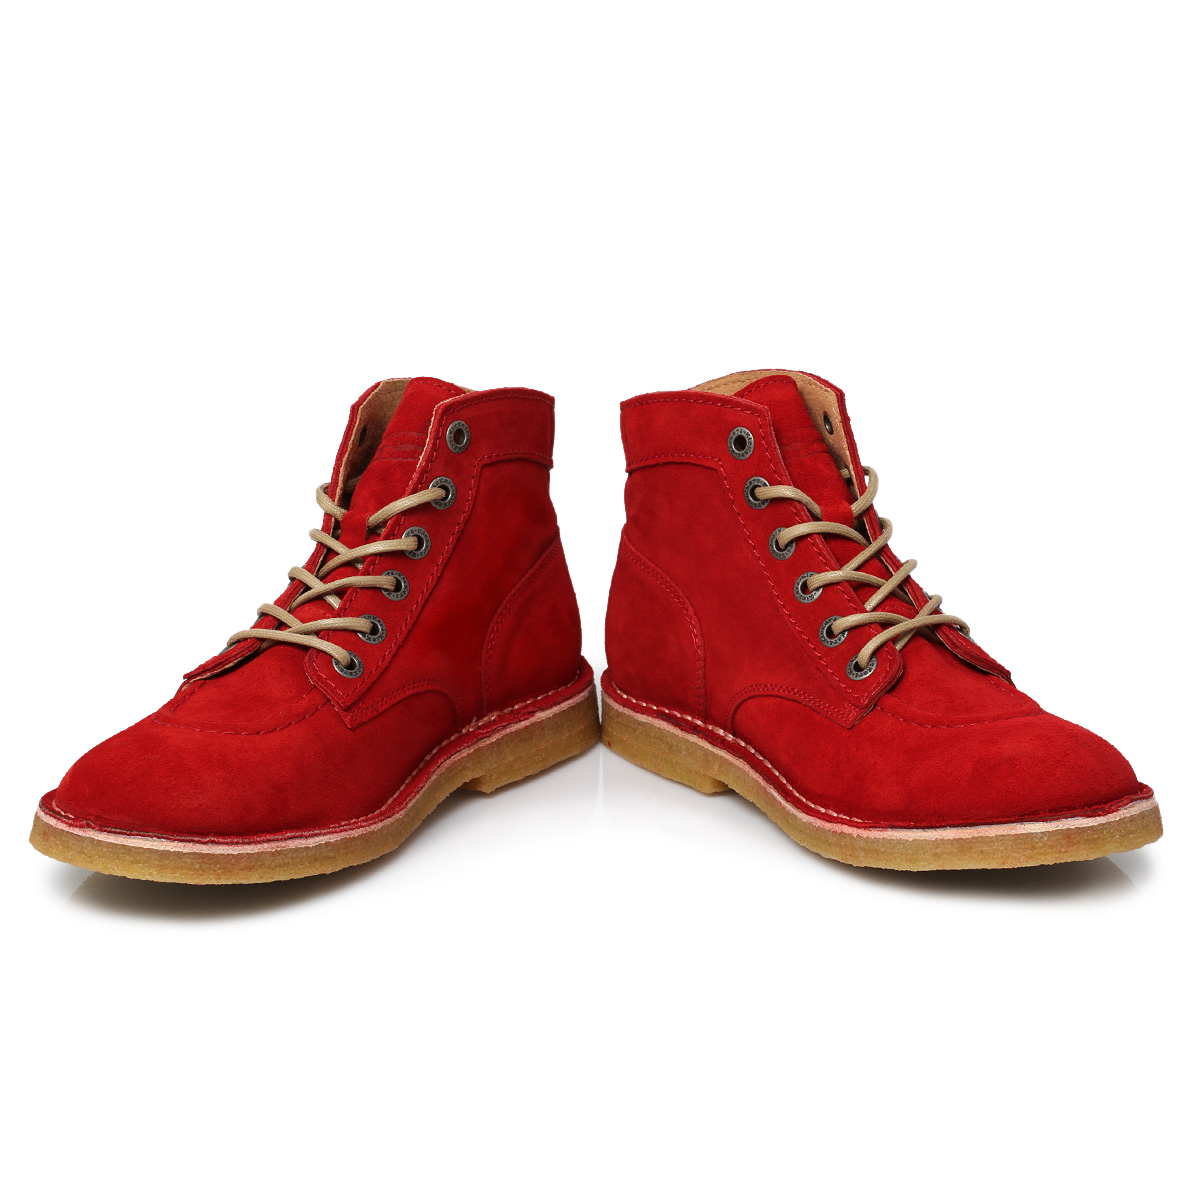 Mens Red Boots xfY7GaqR